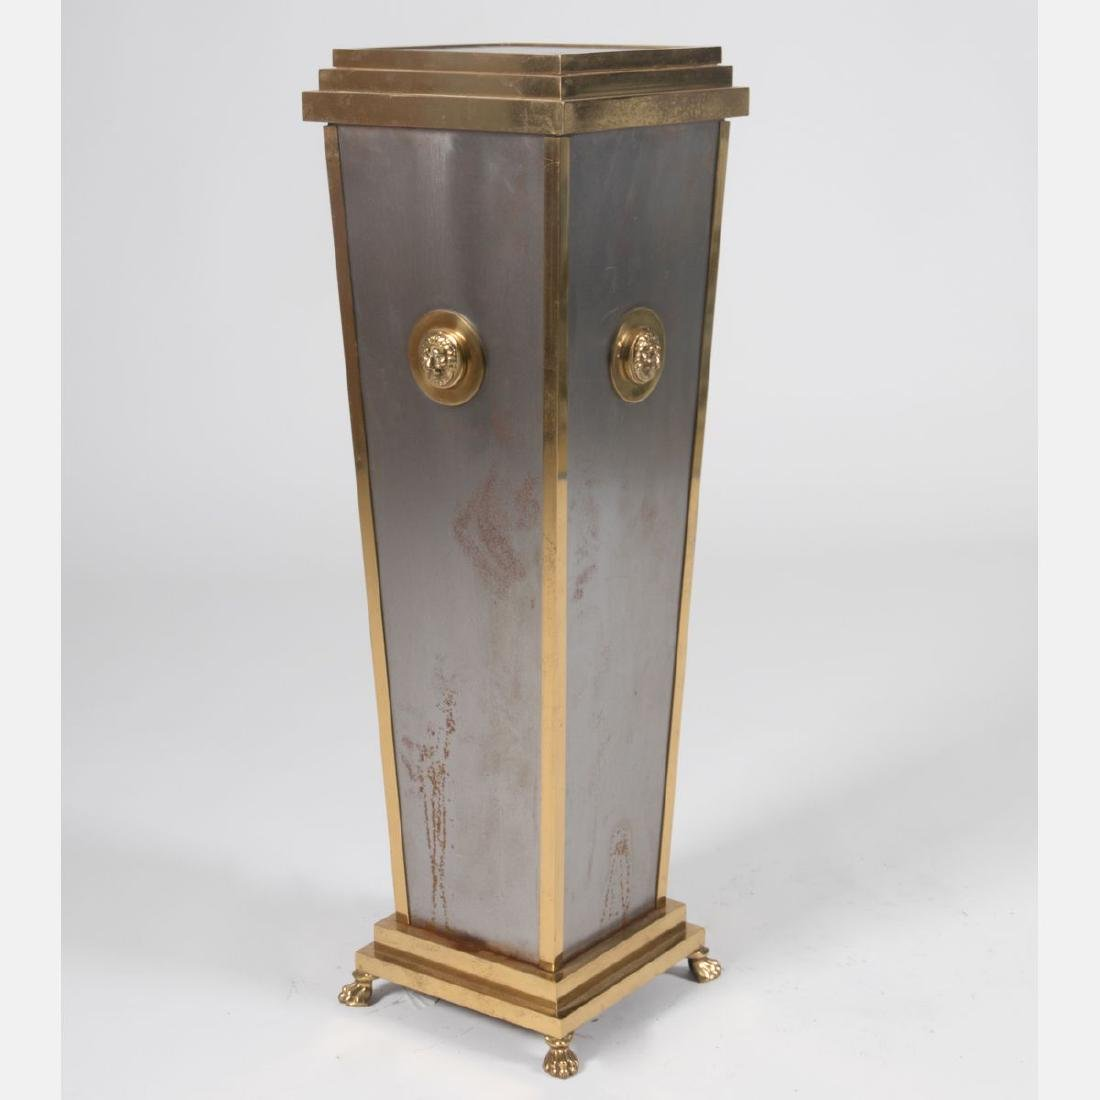 A Regency Style Brass and Steel Plated Pedestal, 20th